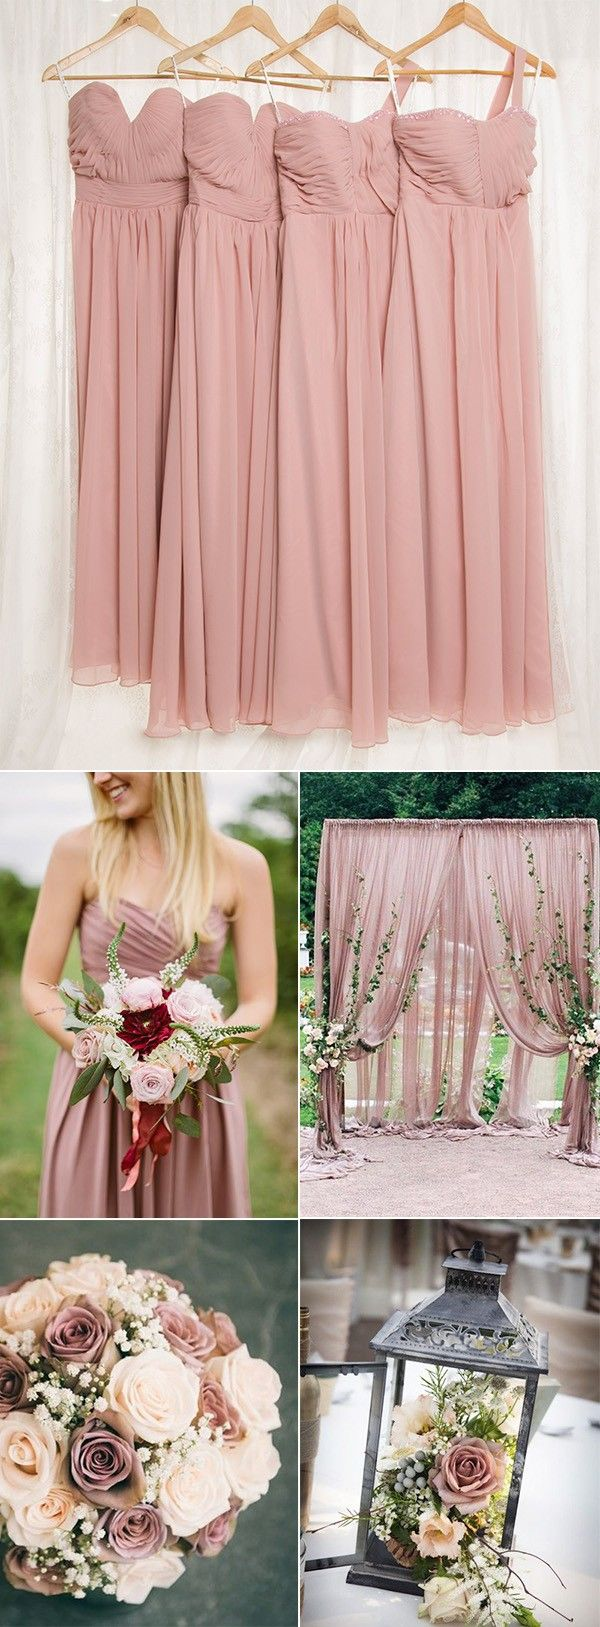 dusty rose wedding color ideas and bridesmaid dresses | Entourage ...